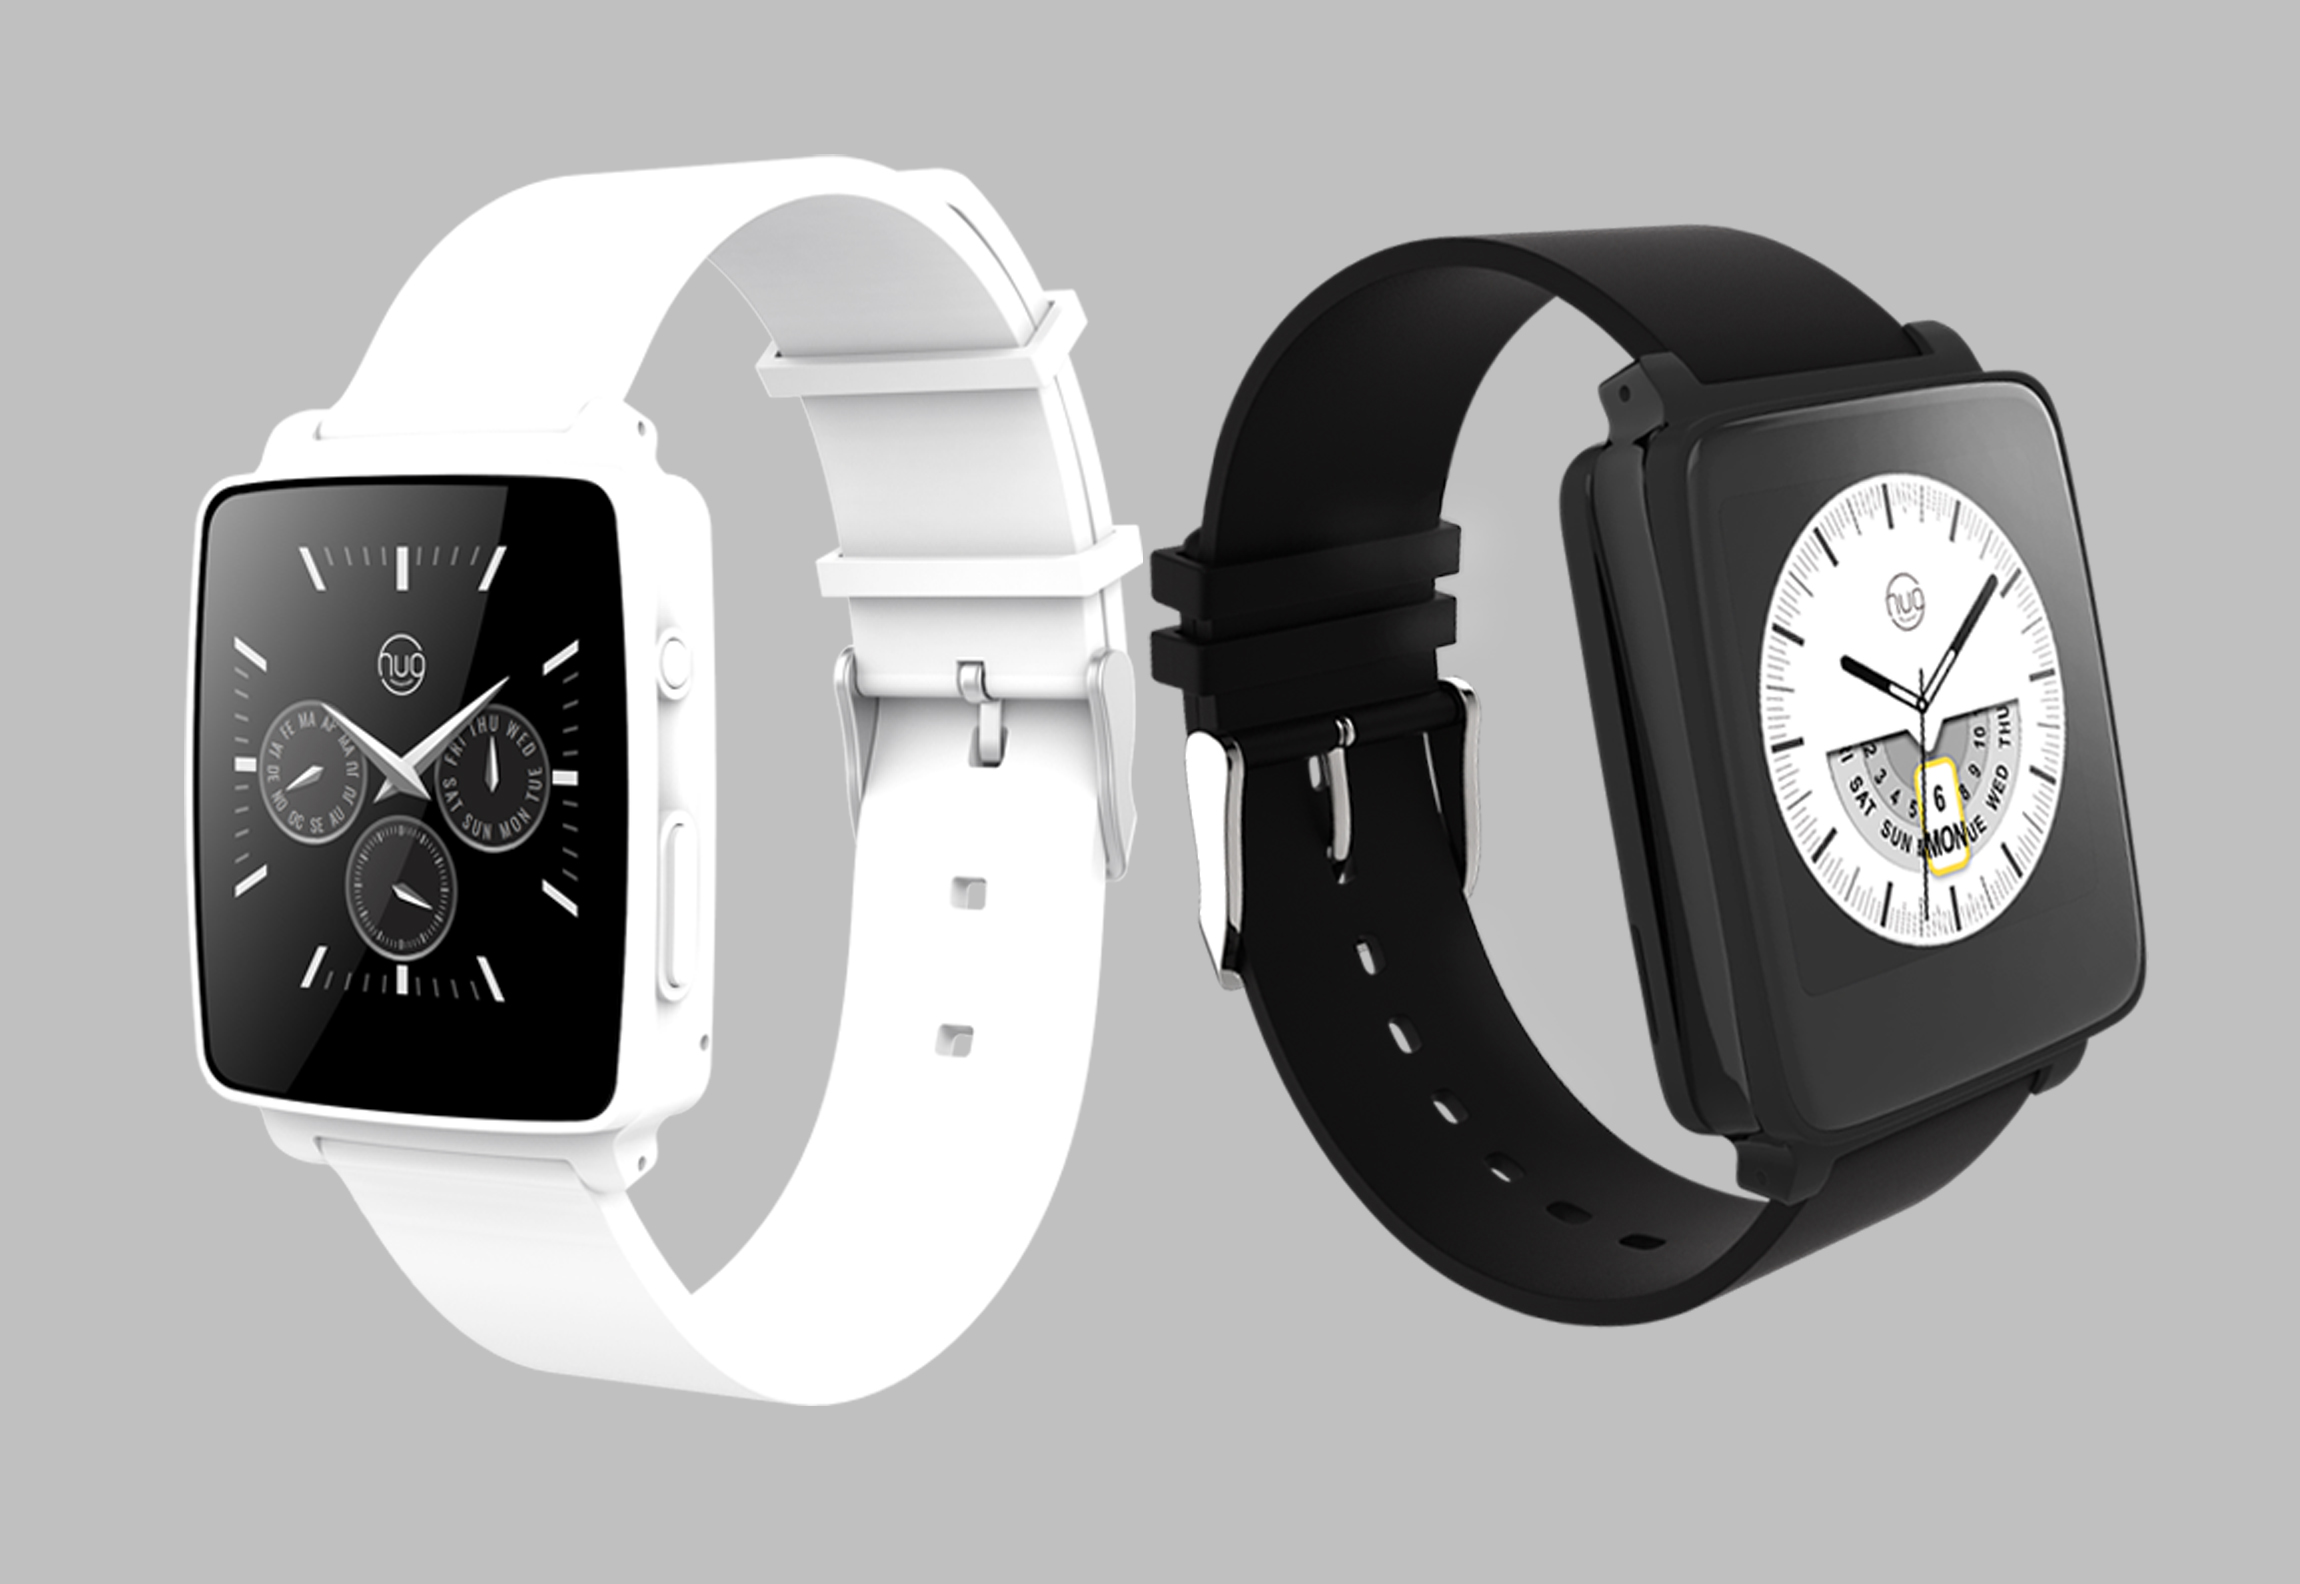 Hug Smartwatch offers gesture controls